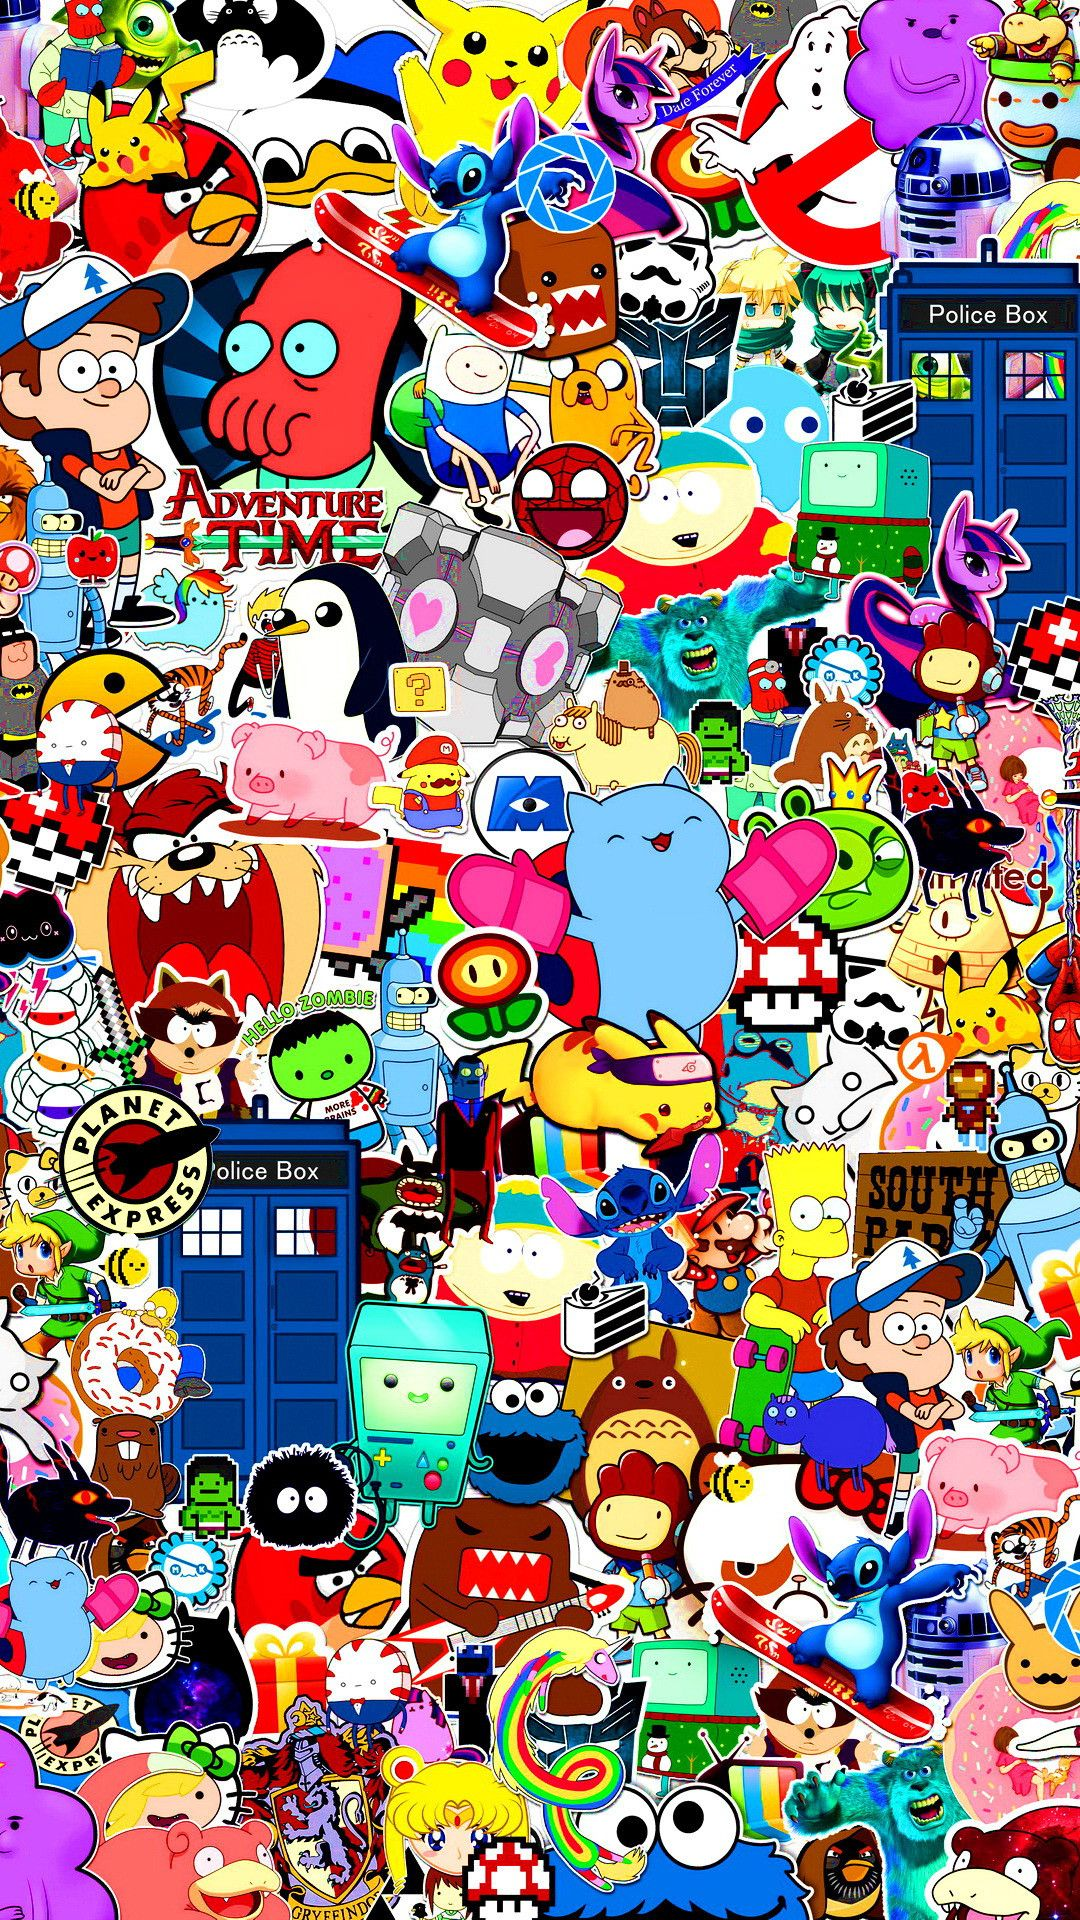 1080x1920 Wallpaper of Cartoon Characters (65+ images)